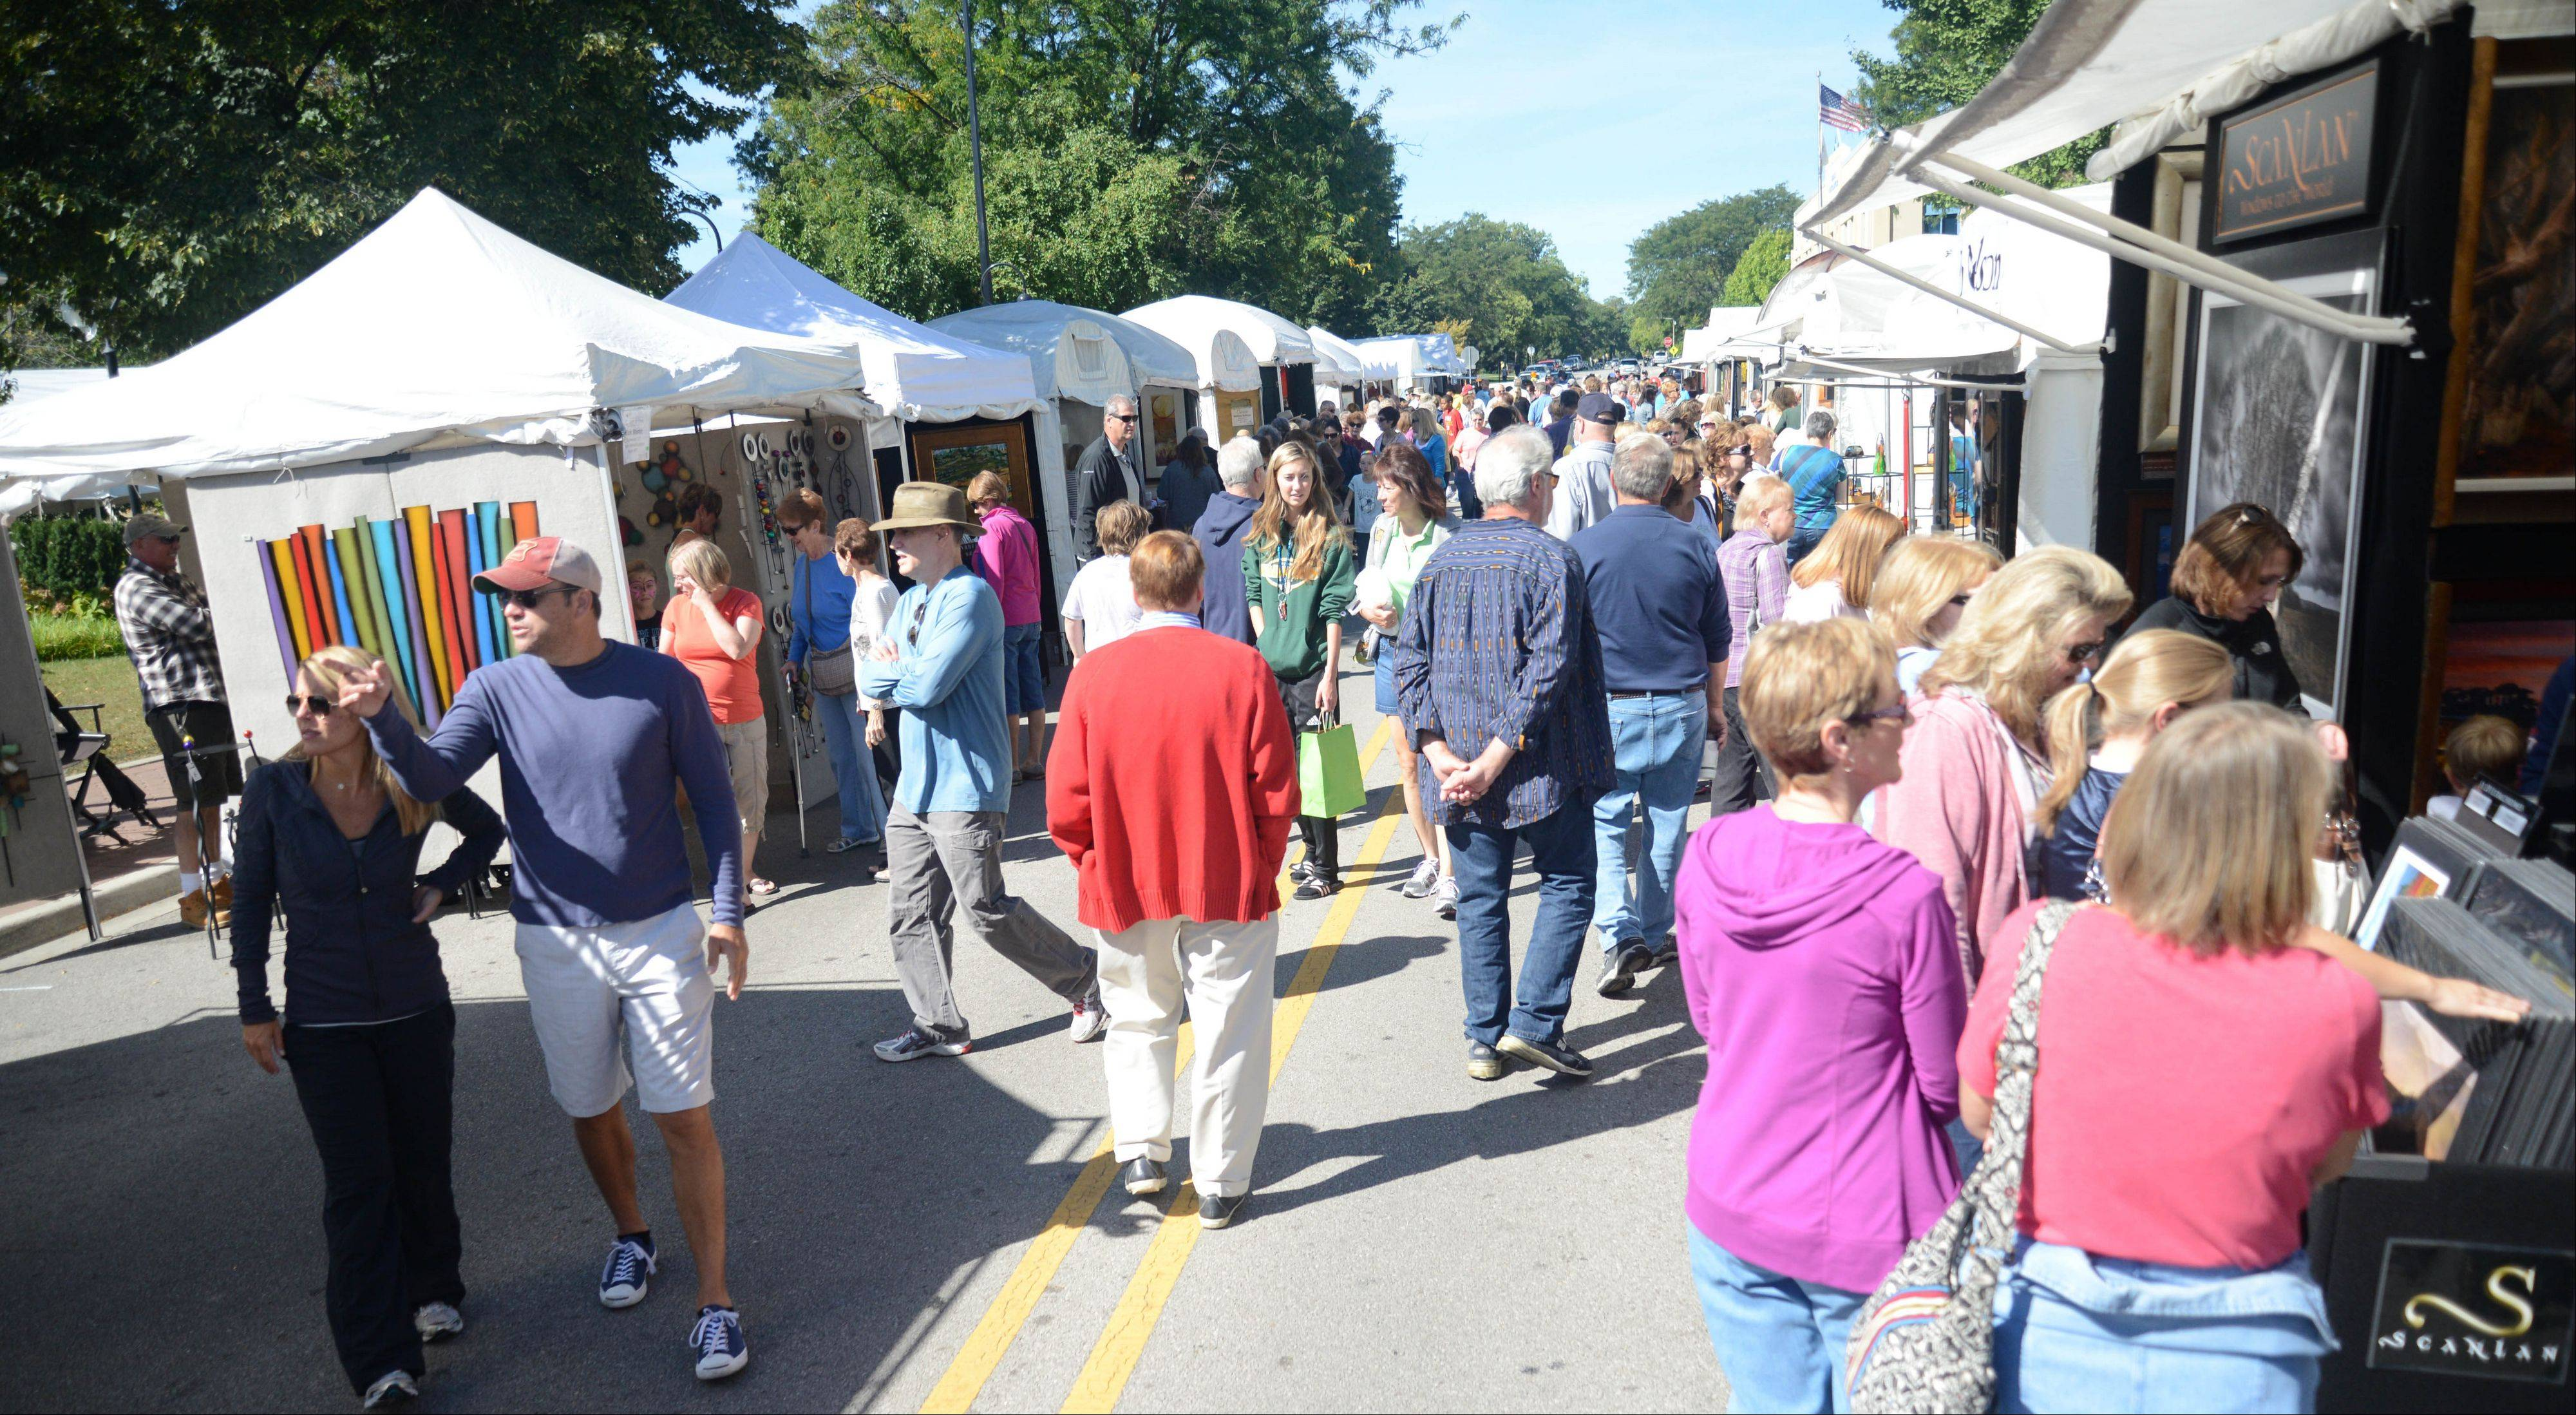 The Naperville Art League�s annual Riverwalk Fine Art Fair in Naperville brought lots of people on Saturday to downtown Naperville. The fair features works by 135 artists.